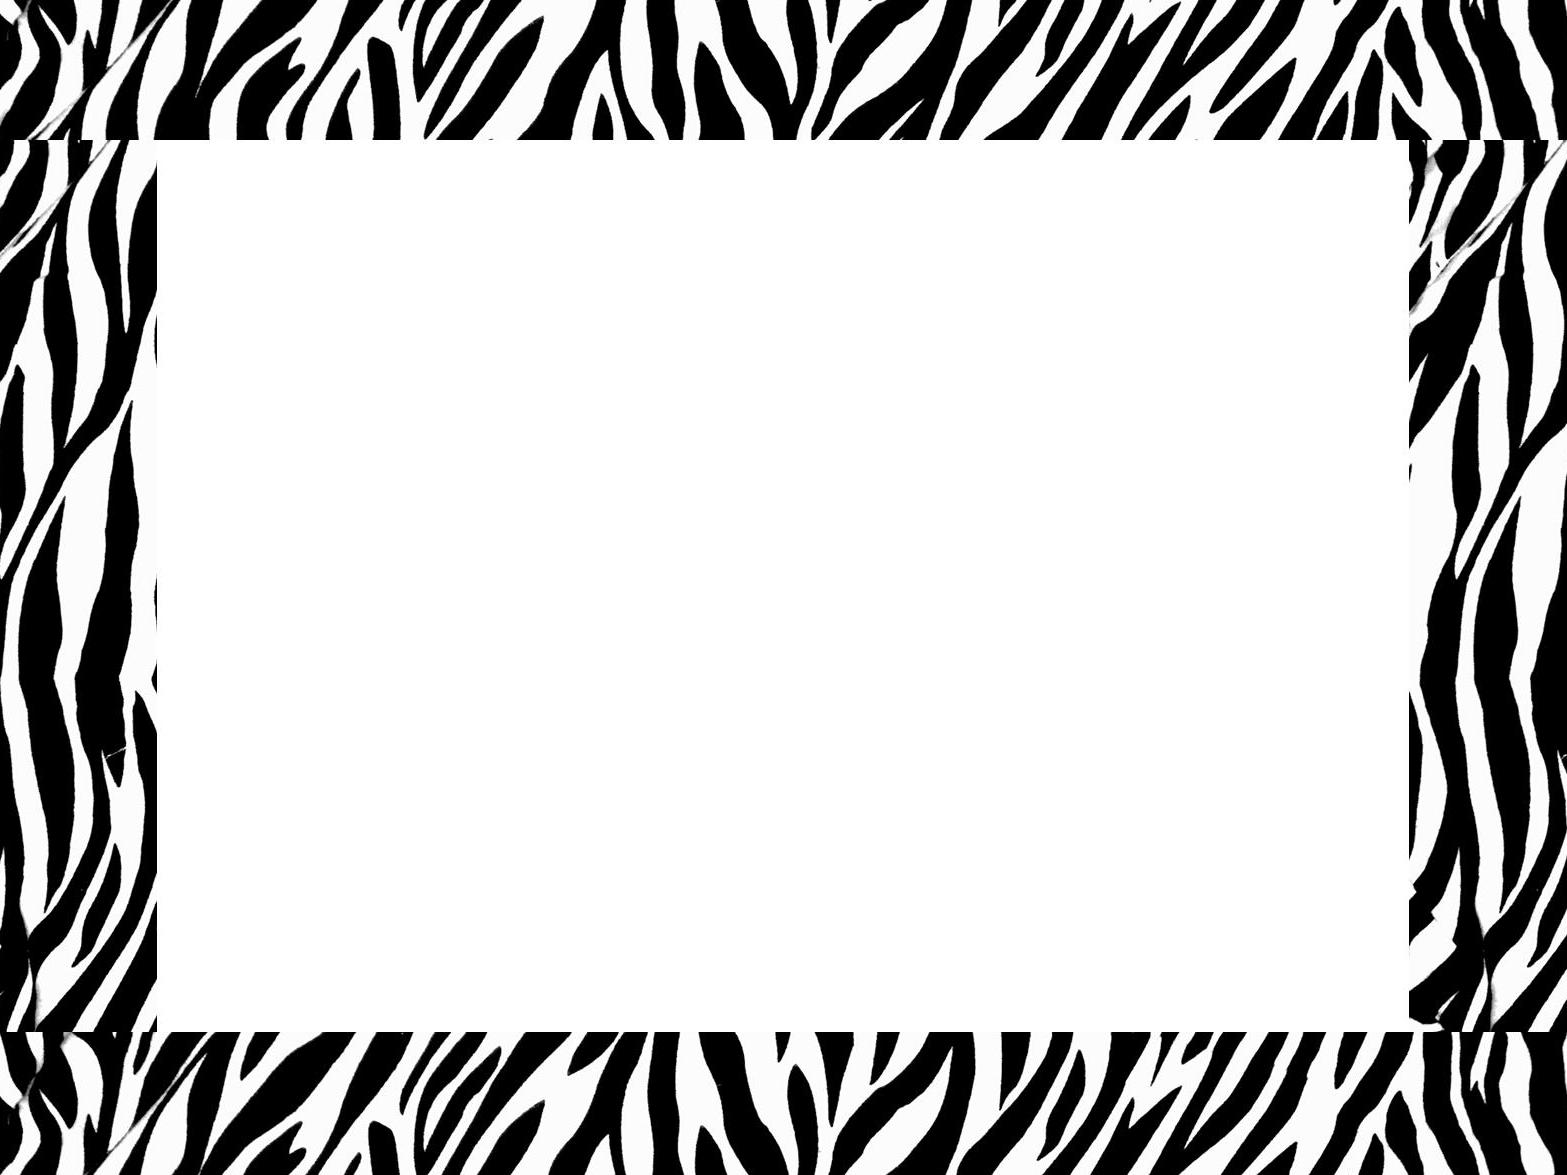 Zebra Label Template For Word